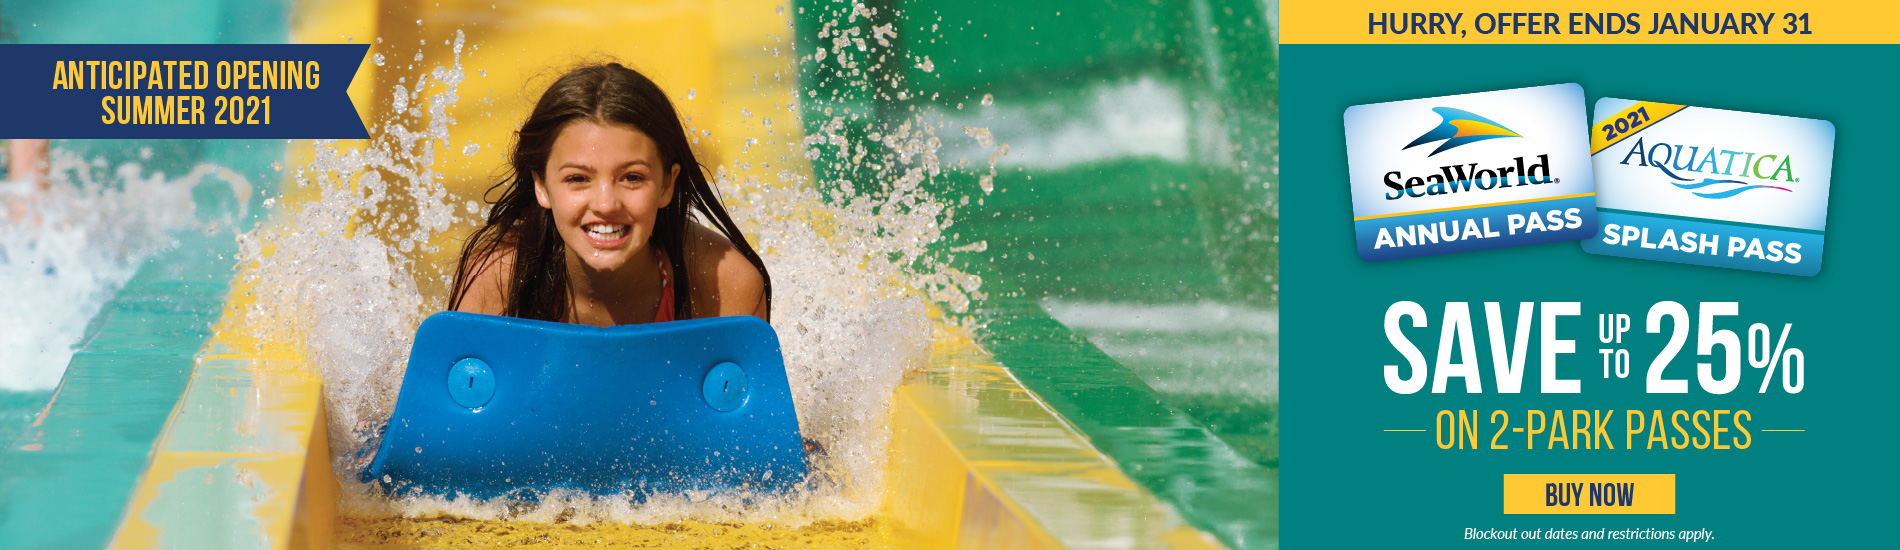 Limited-Time Offer: Save up to 25% on Passes!